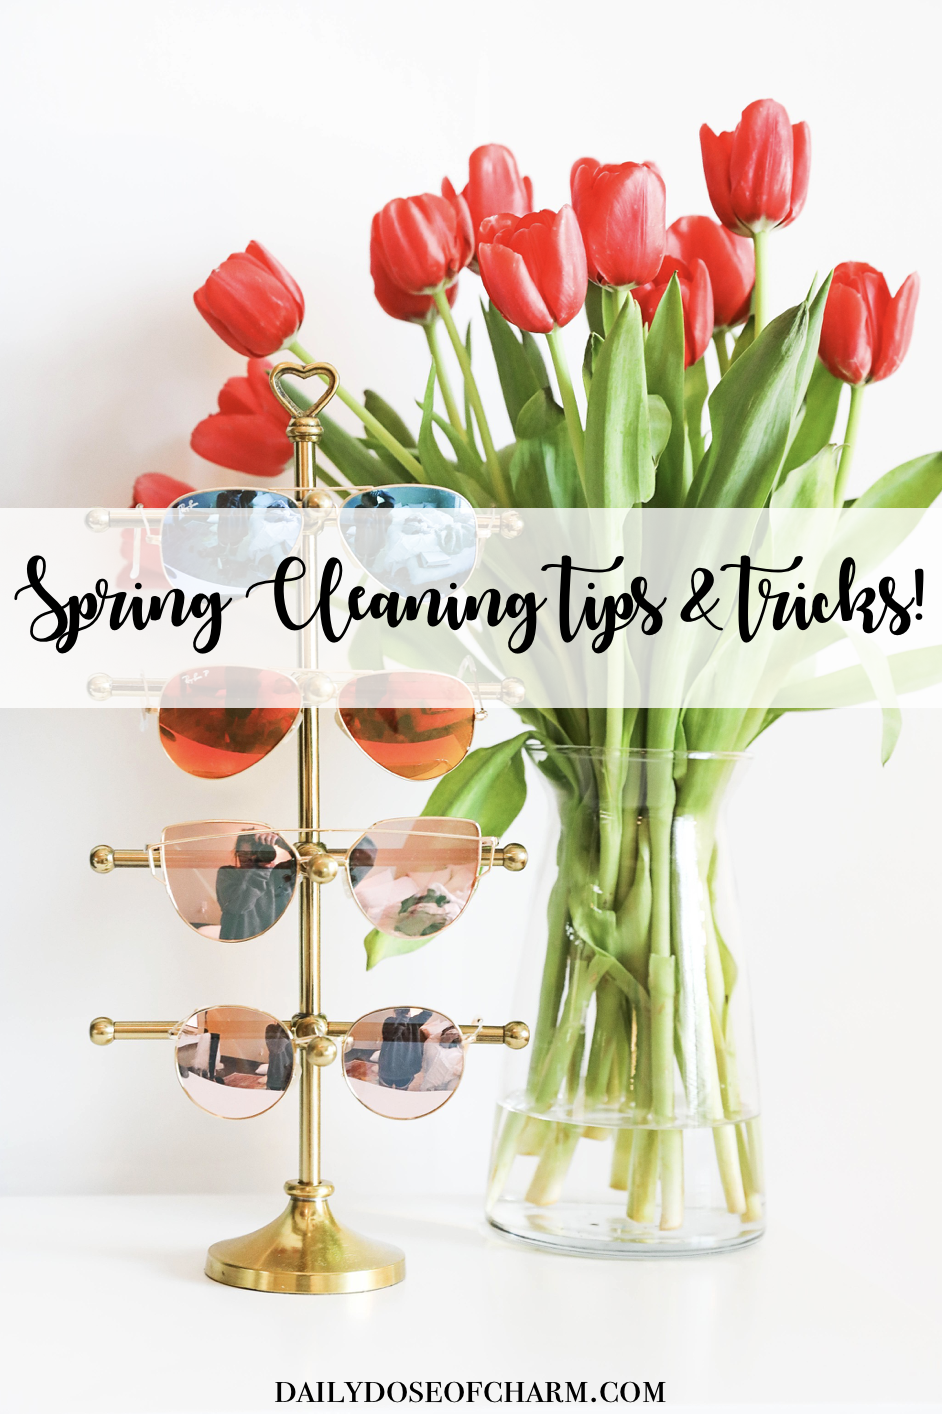 Spring cleaning tips and tricks plus cute storage roundup on fashion blog daily dose of charm by lauren lindmark